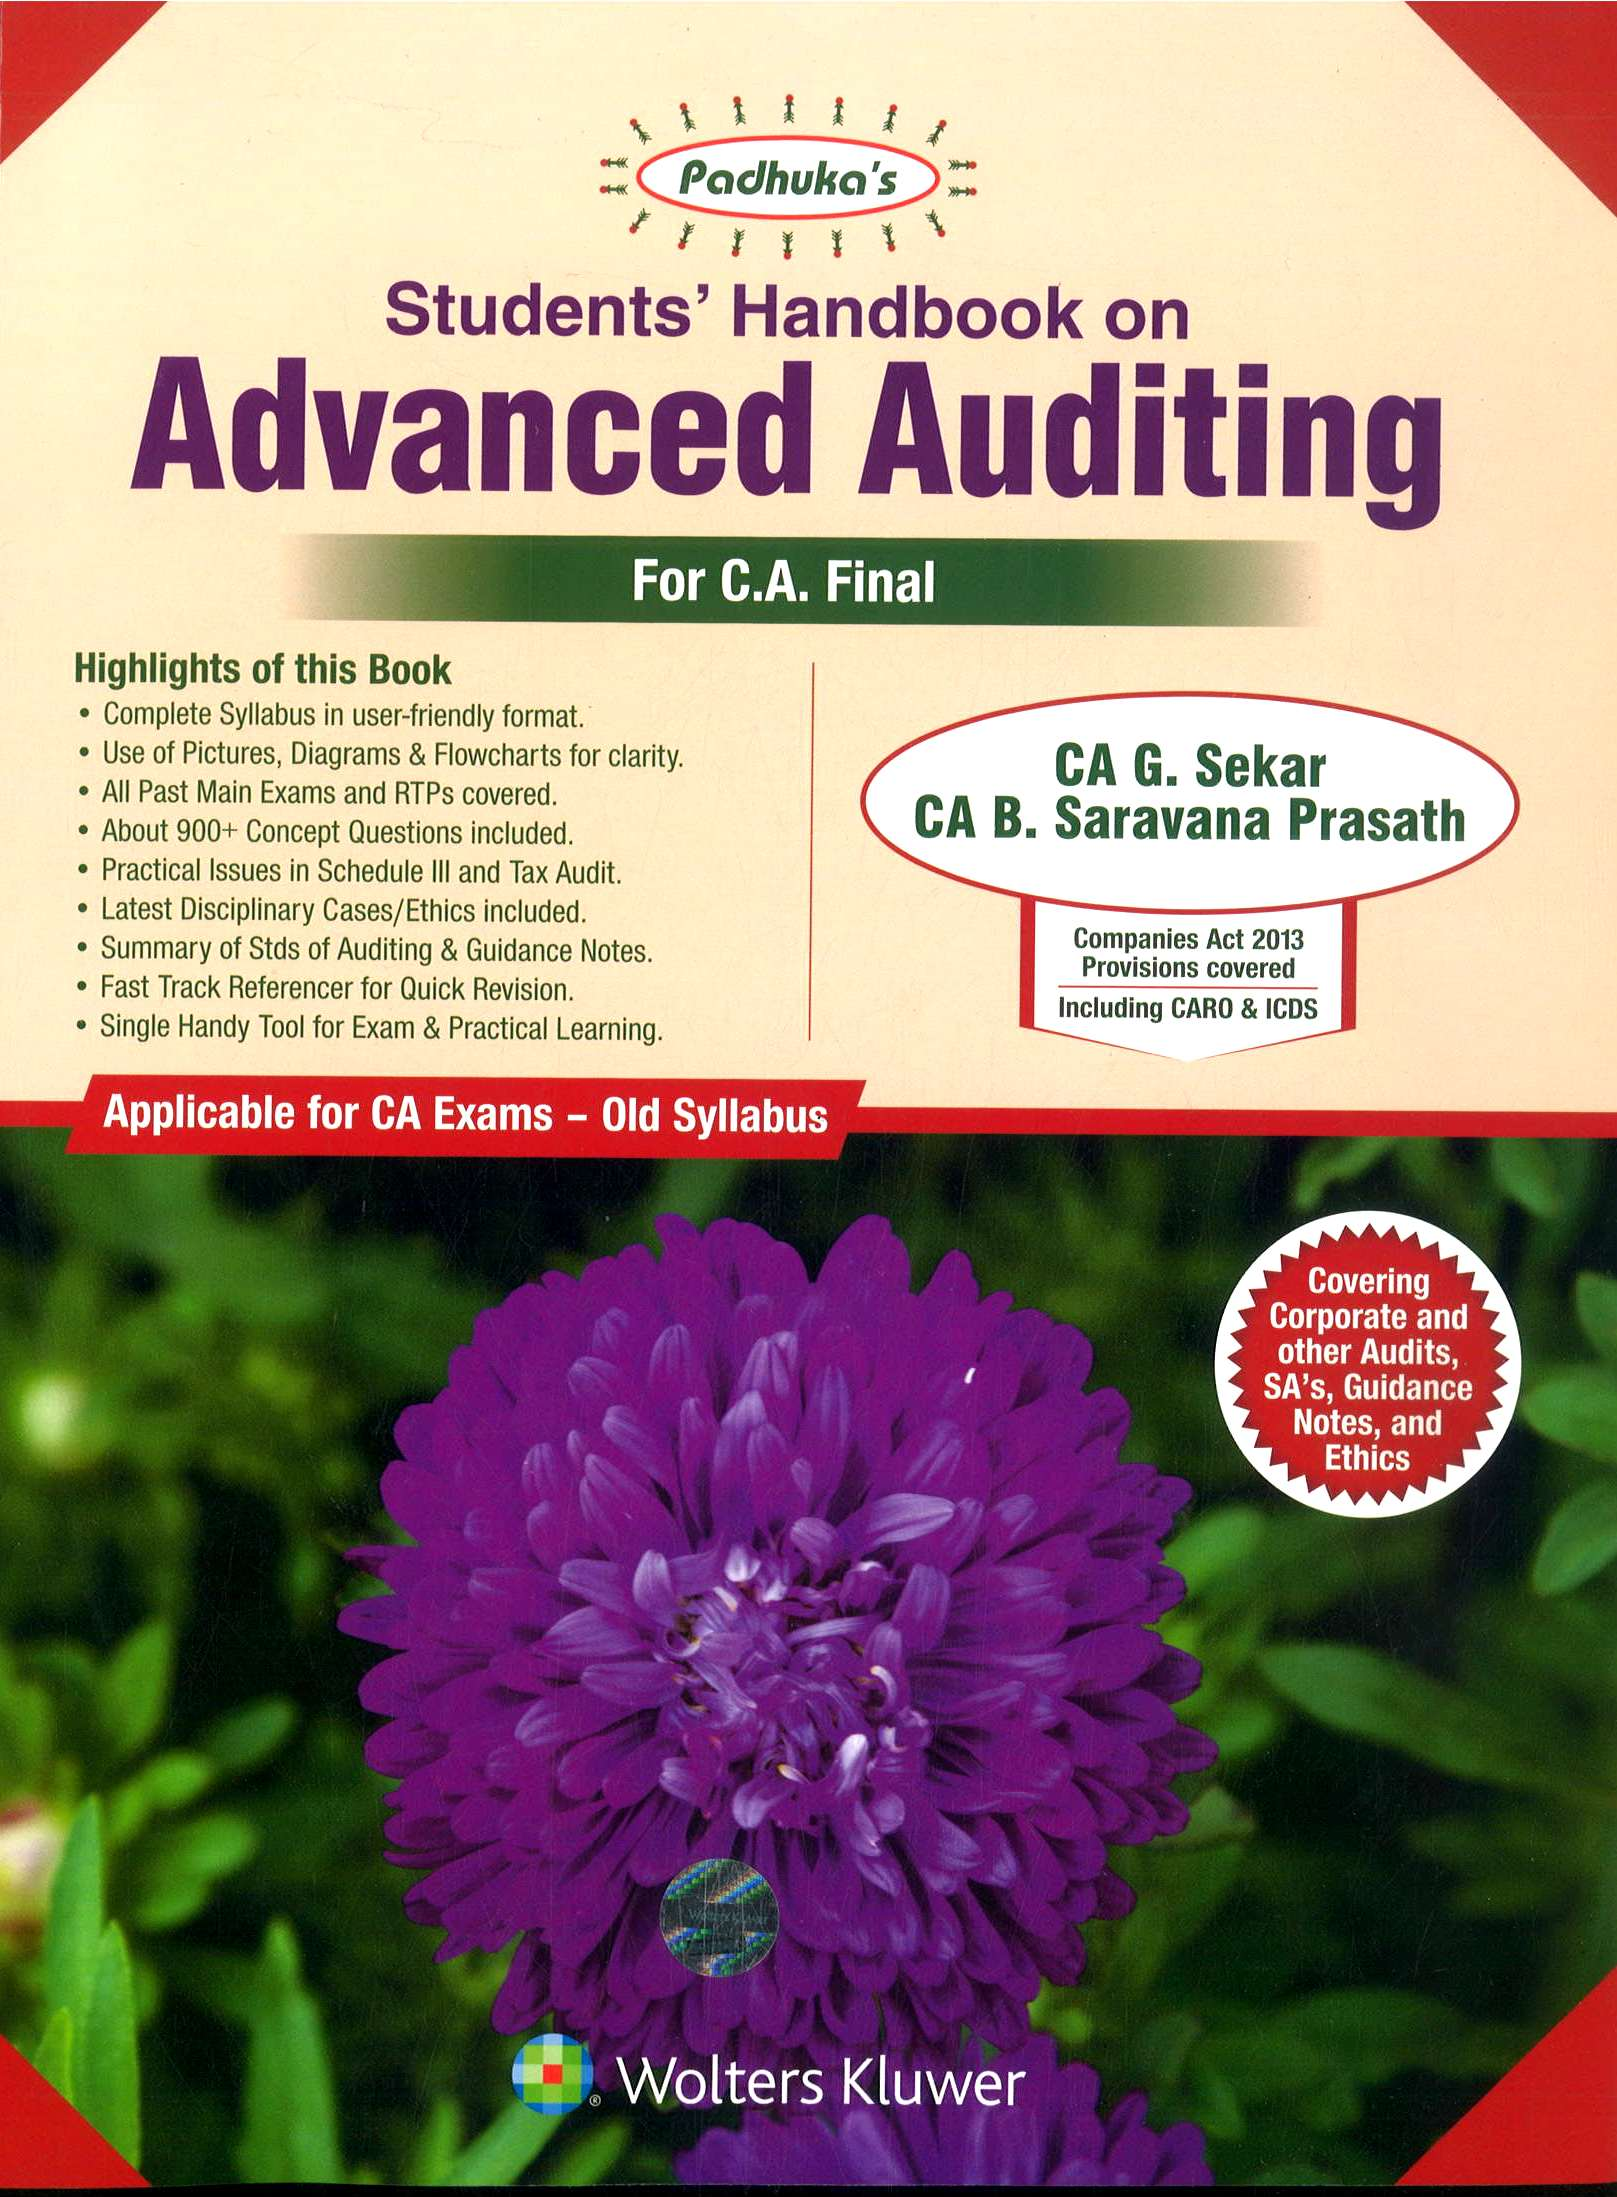 Padhuka's Student Handbook on Advanced Auditing CA Final (old Syllabus) for Nov 2018 exam by CA G. Sekar and CA B. Saravana Prasath (Wolters Kluwer Publishing) Edition 2018